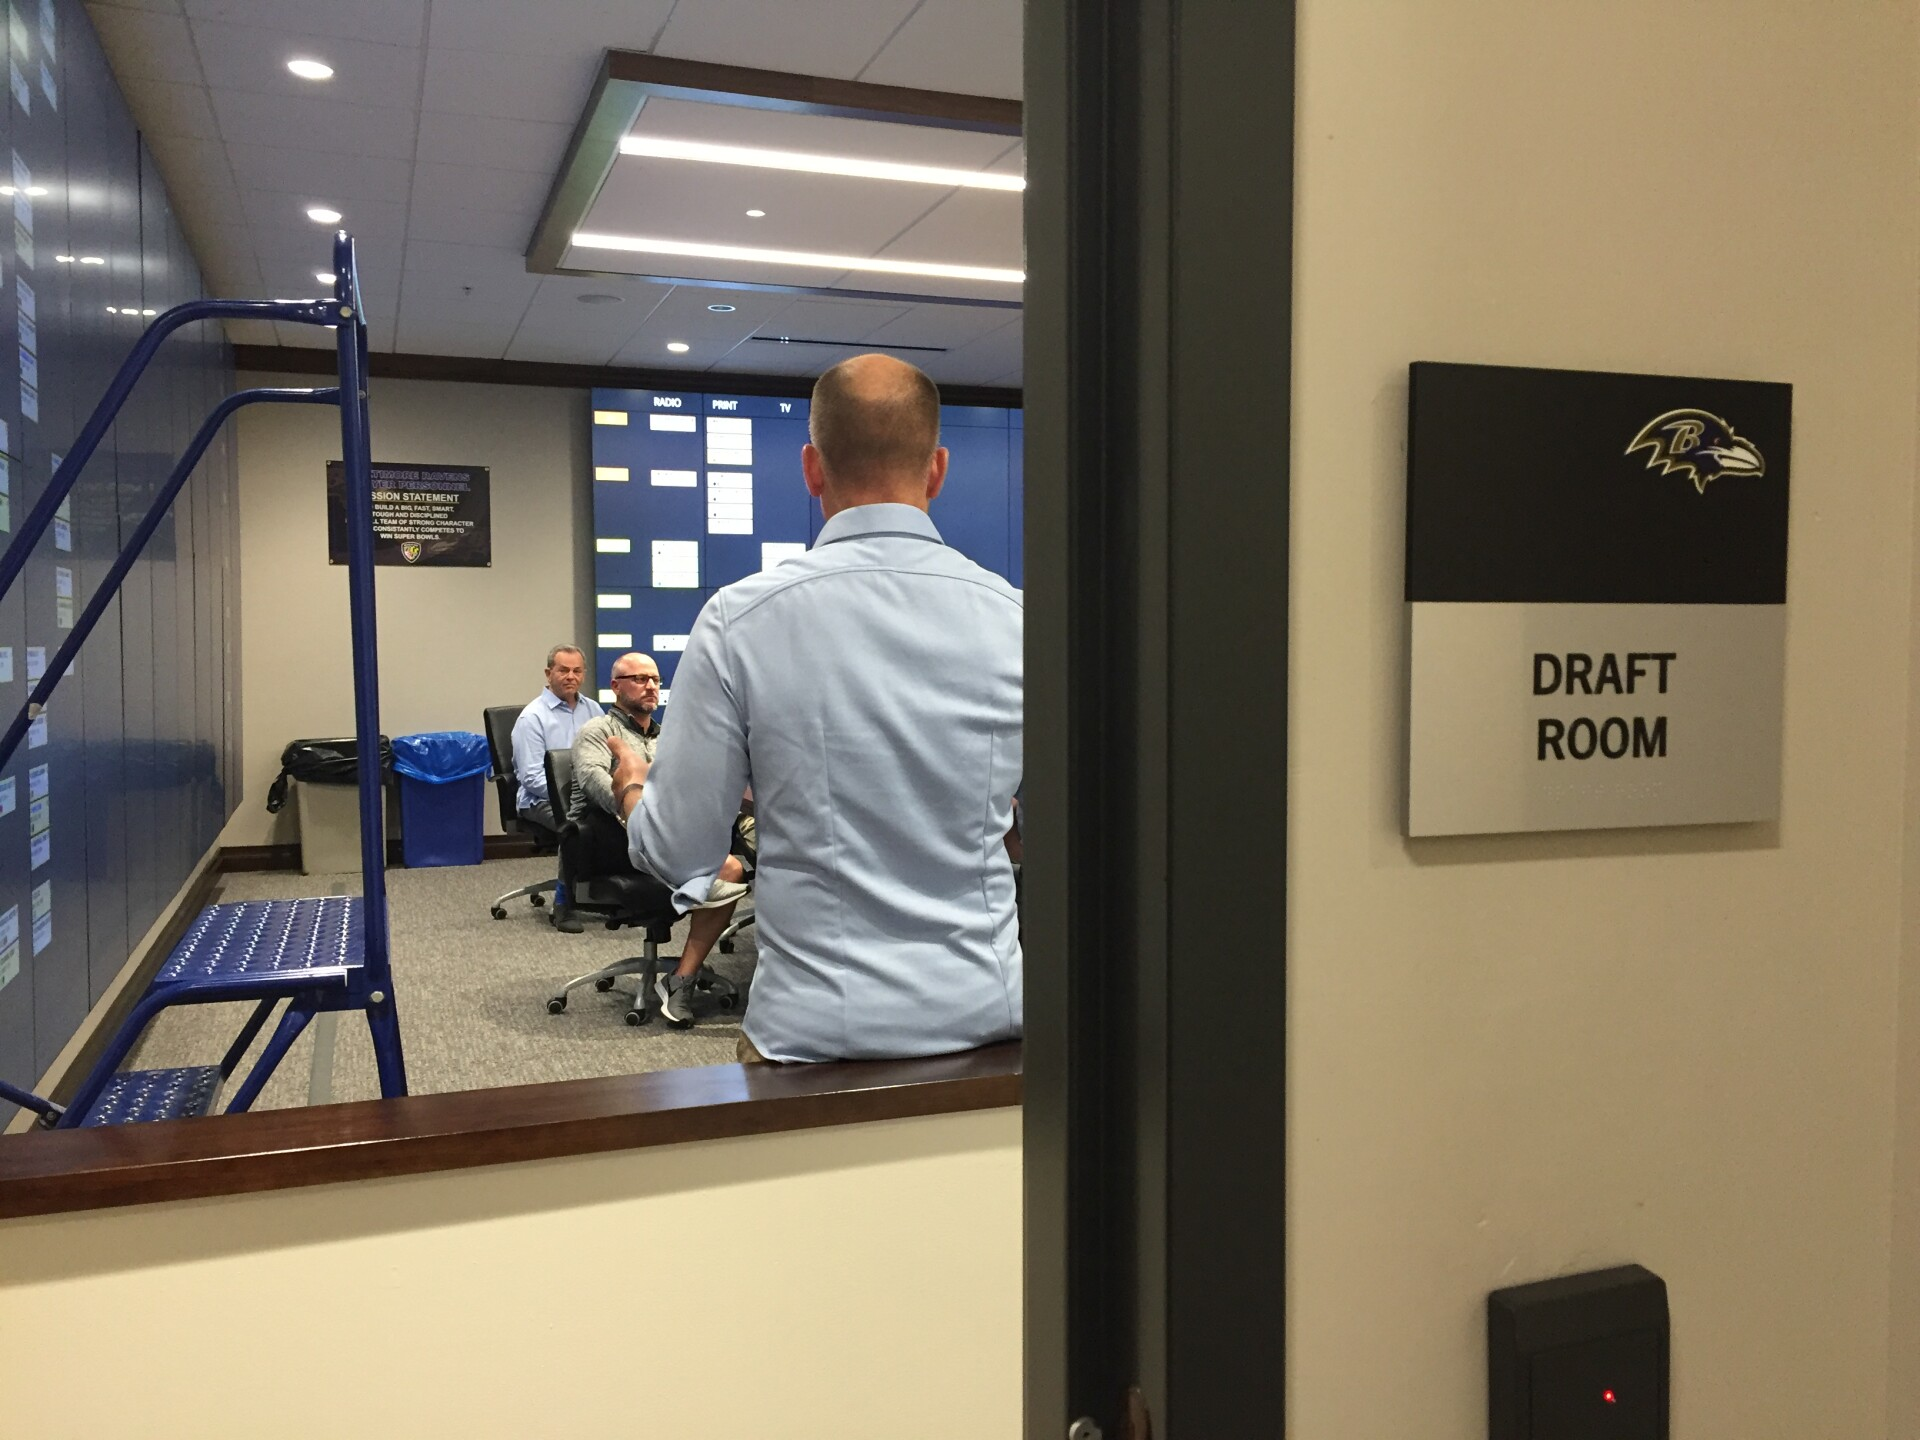 ravens draft war room8.JPG